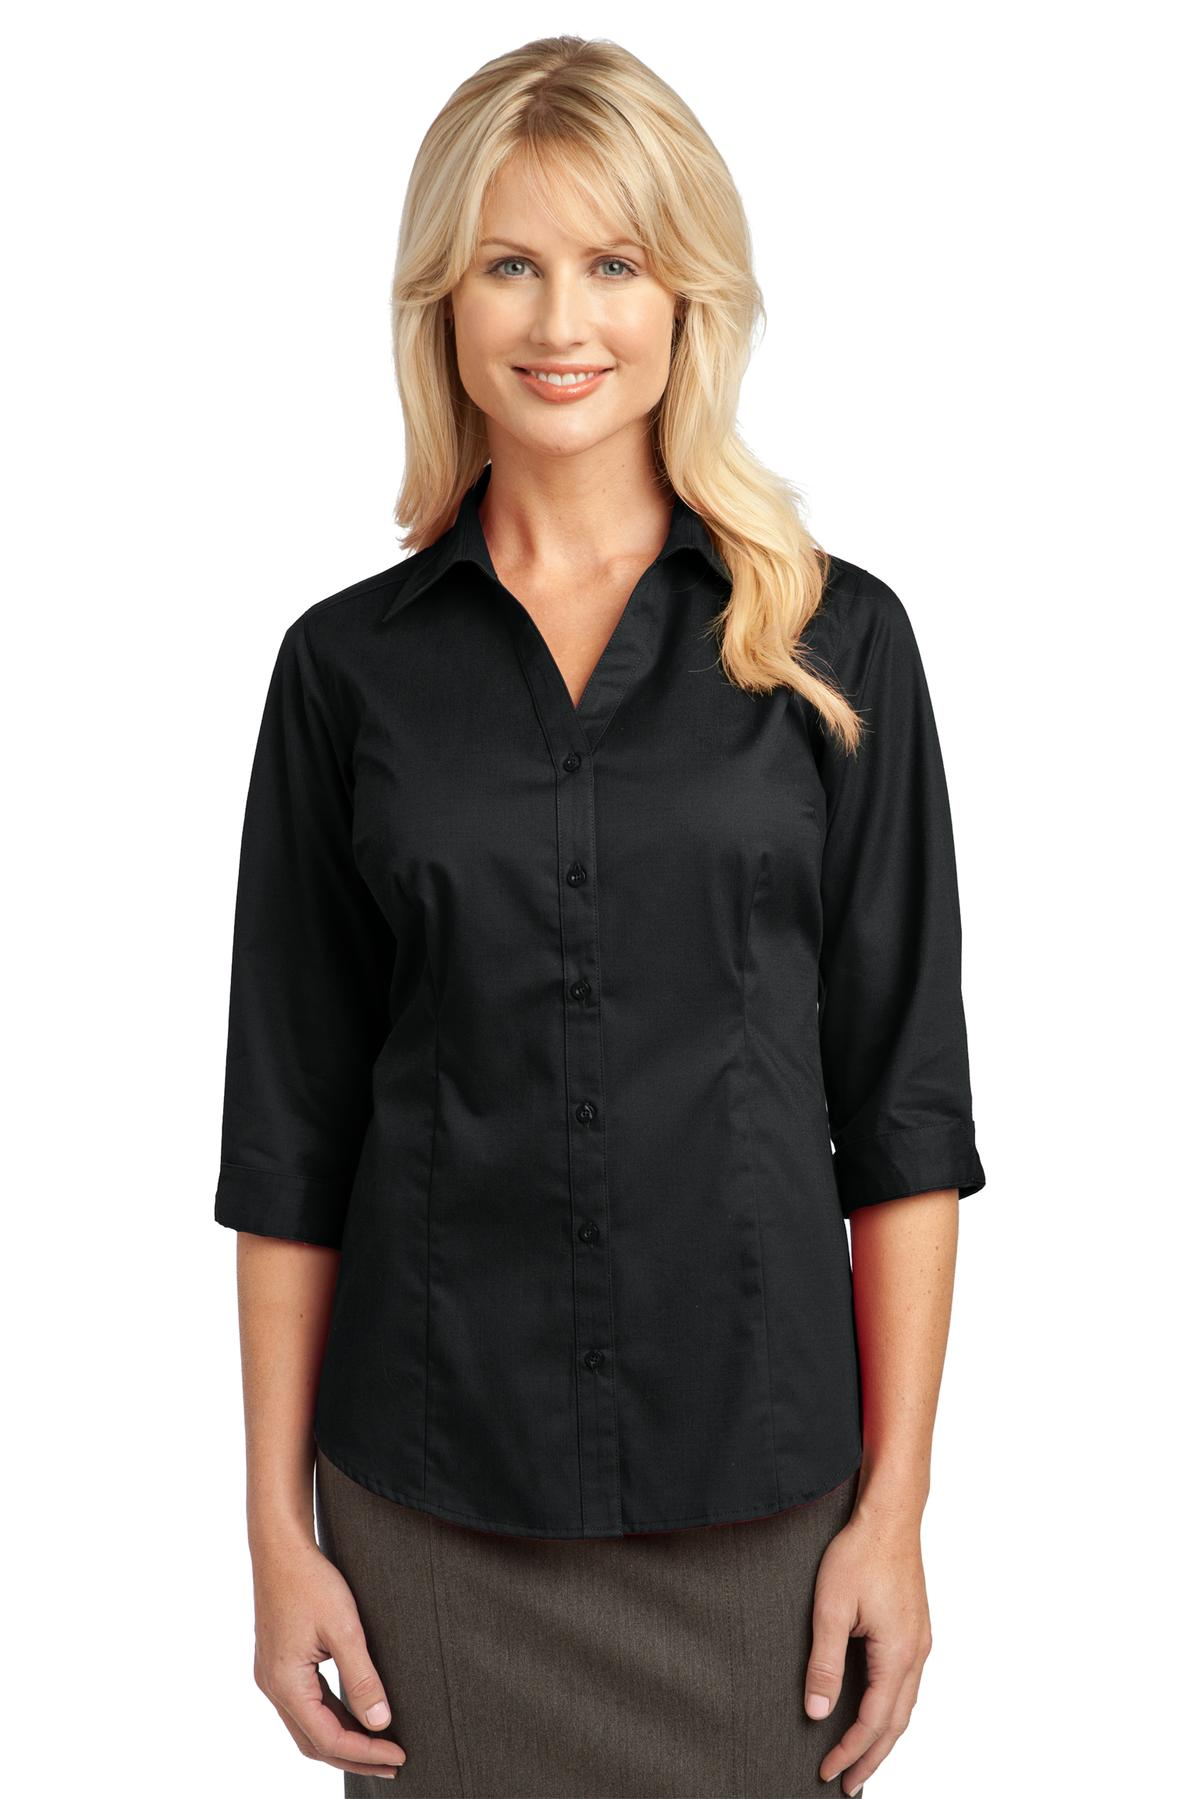 True Royal Port Authority Ladies Dry Zone® UV Micro-Mesh Polo.